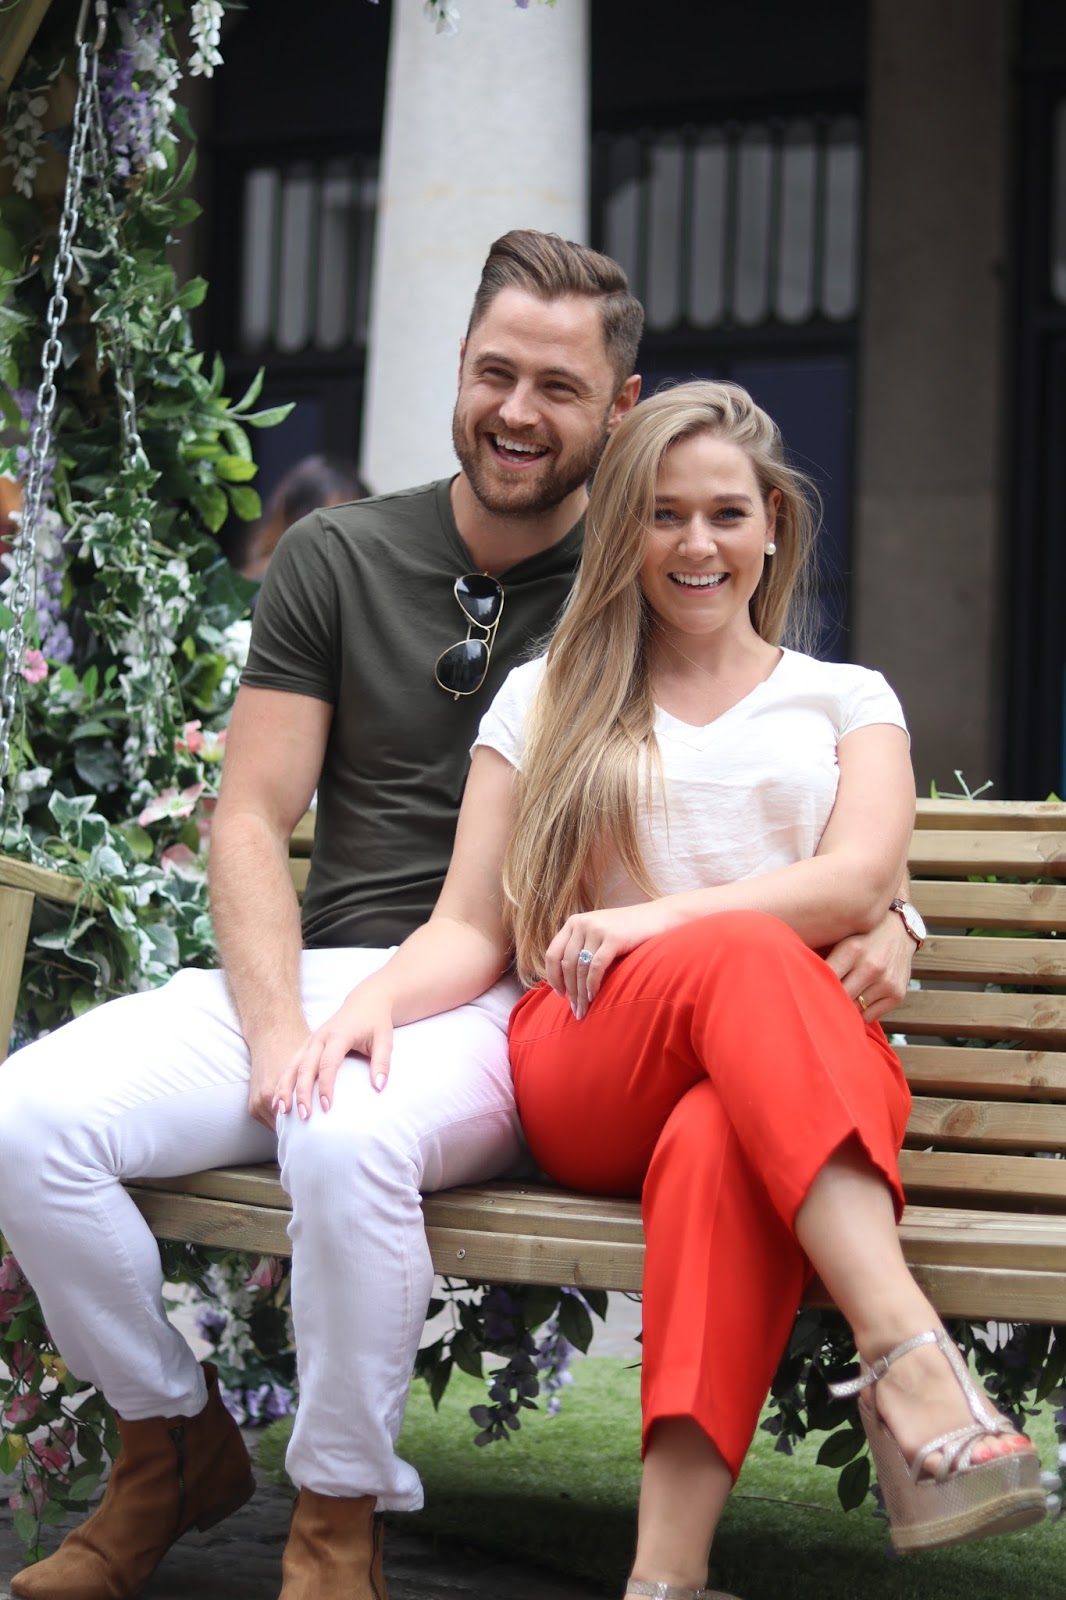 The Lady and Gent, Katie Heath and Ben Heath in Covent Garden